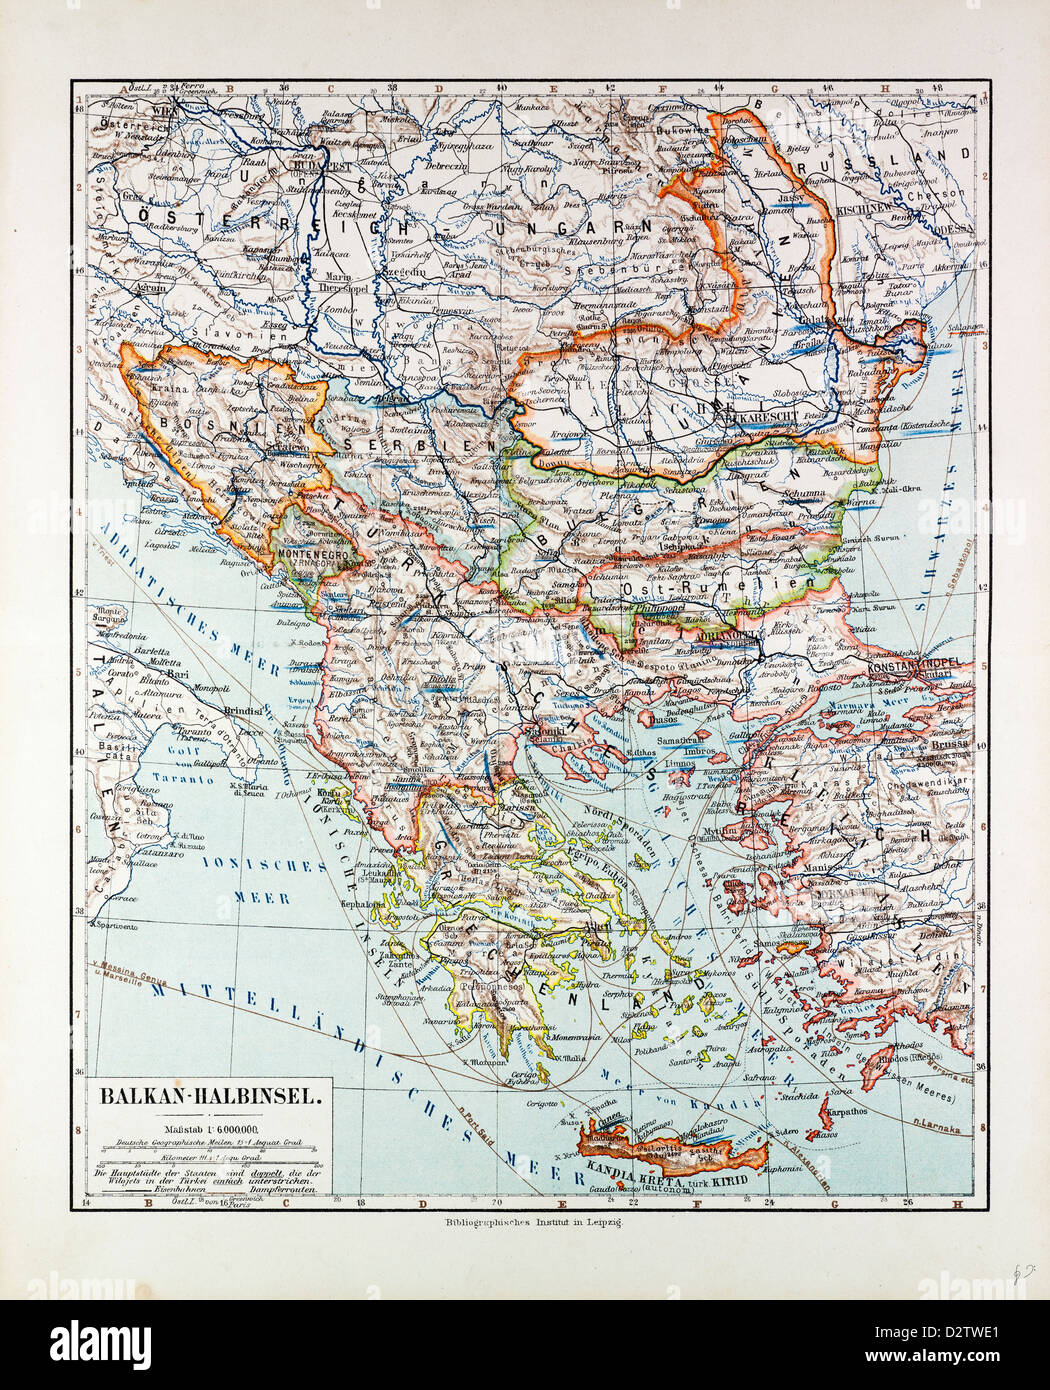 Map of austria hungary greece serbia bosnia and herzegovina romania map of austria hungary greece serbia bosnia and herzegovina romania gumiabroncs